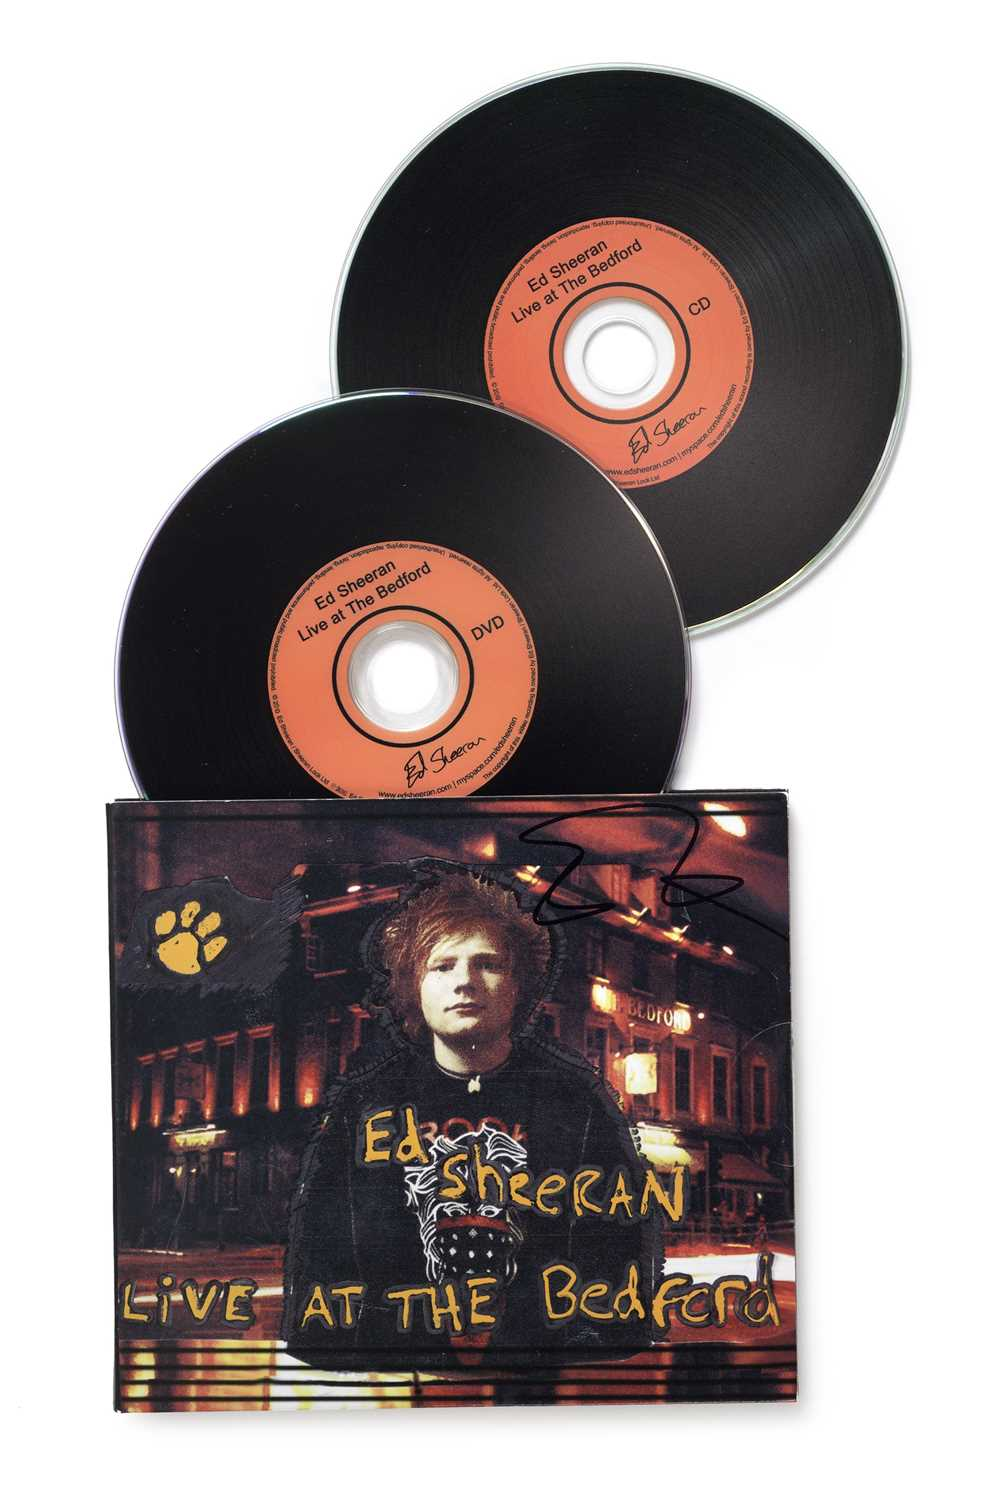 Signed Ed Sheeran Live at the Bedford CD & DVD 2010 A DVD and EP released independently by Ed